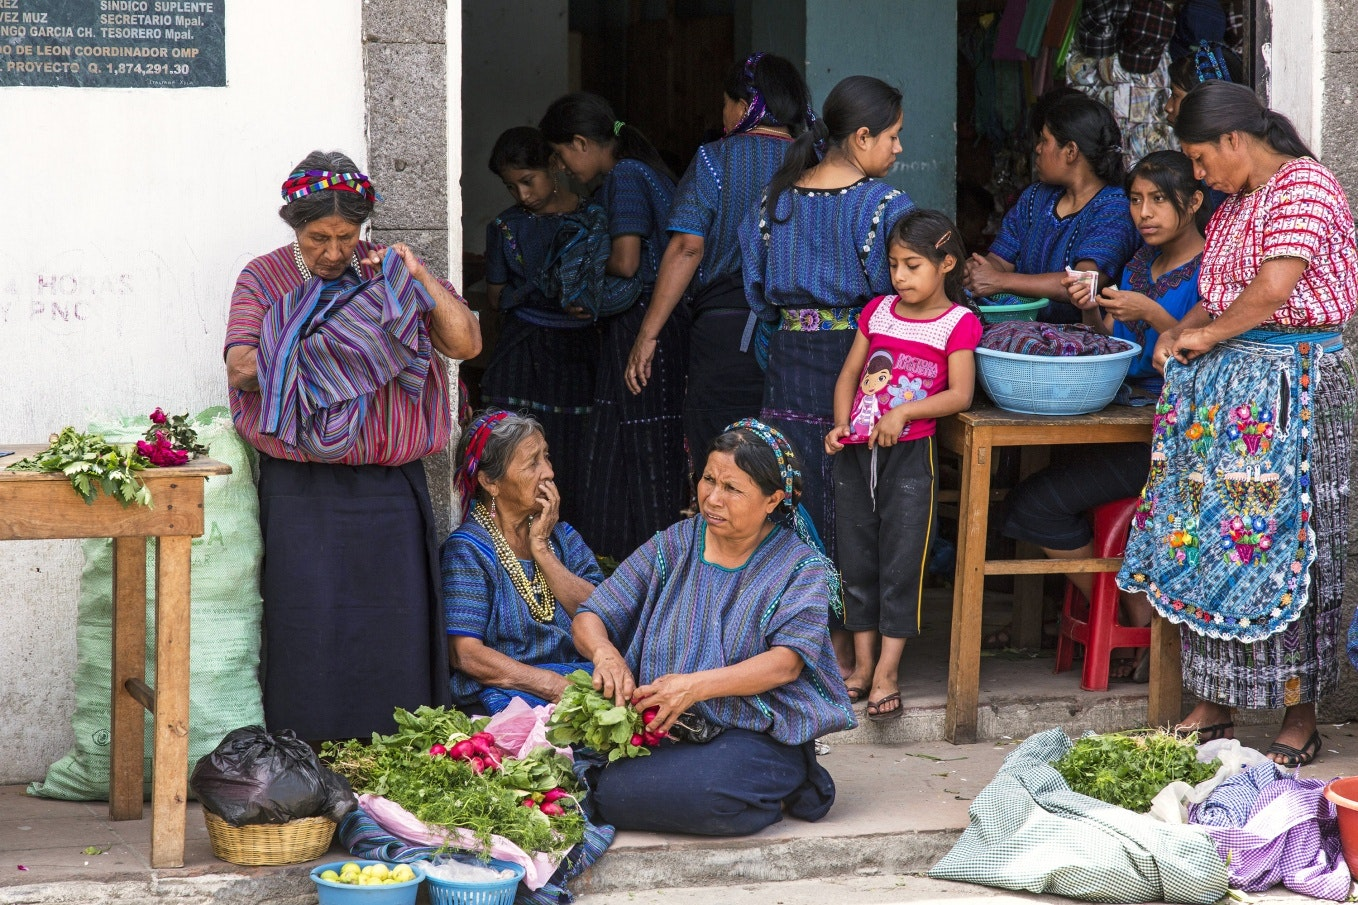 Women in traditional dress with radishes